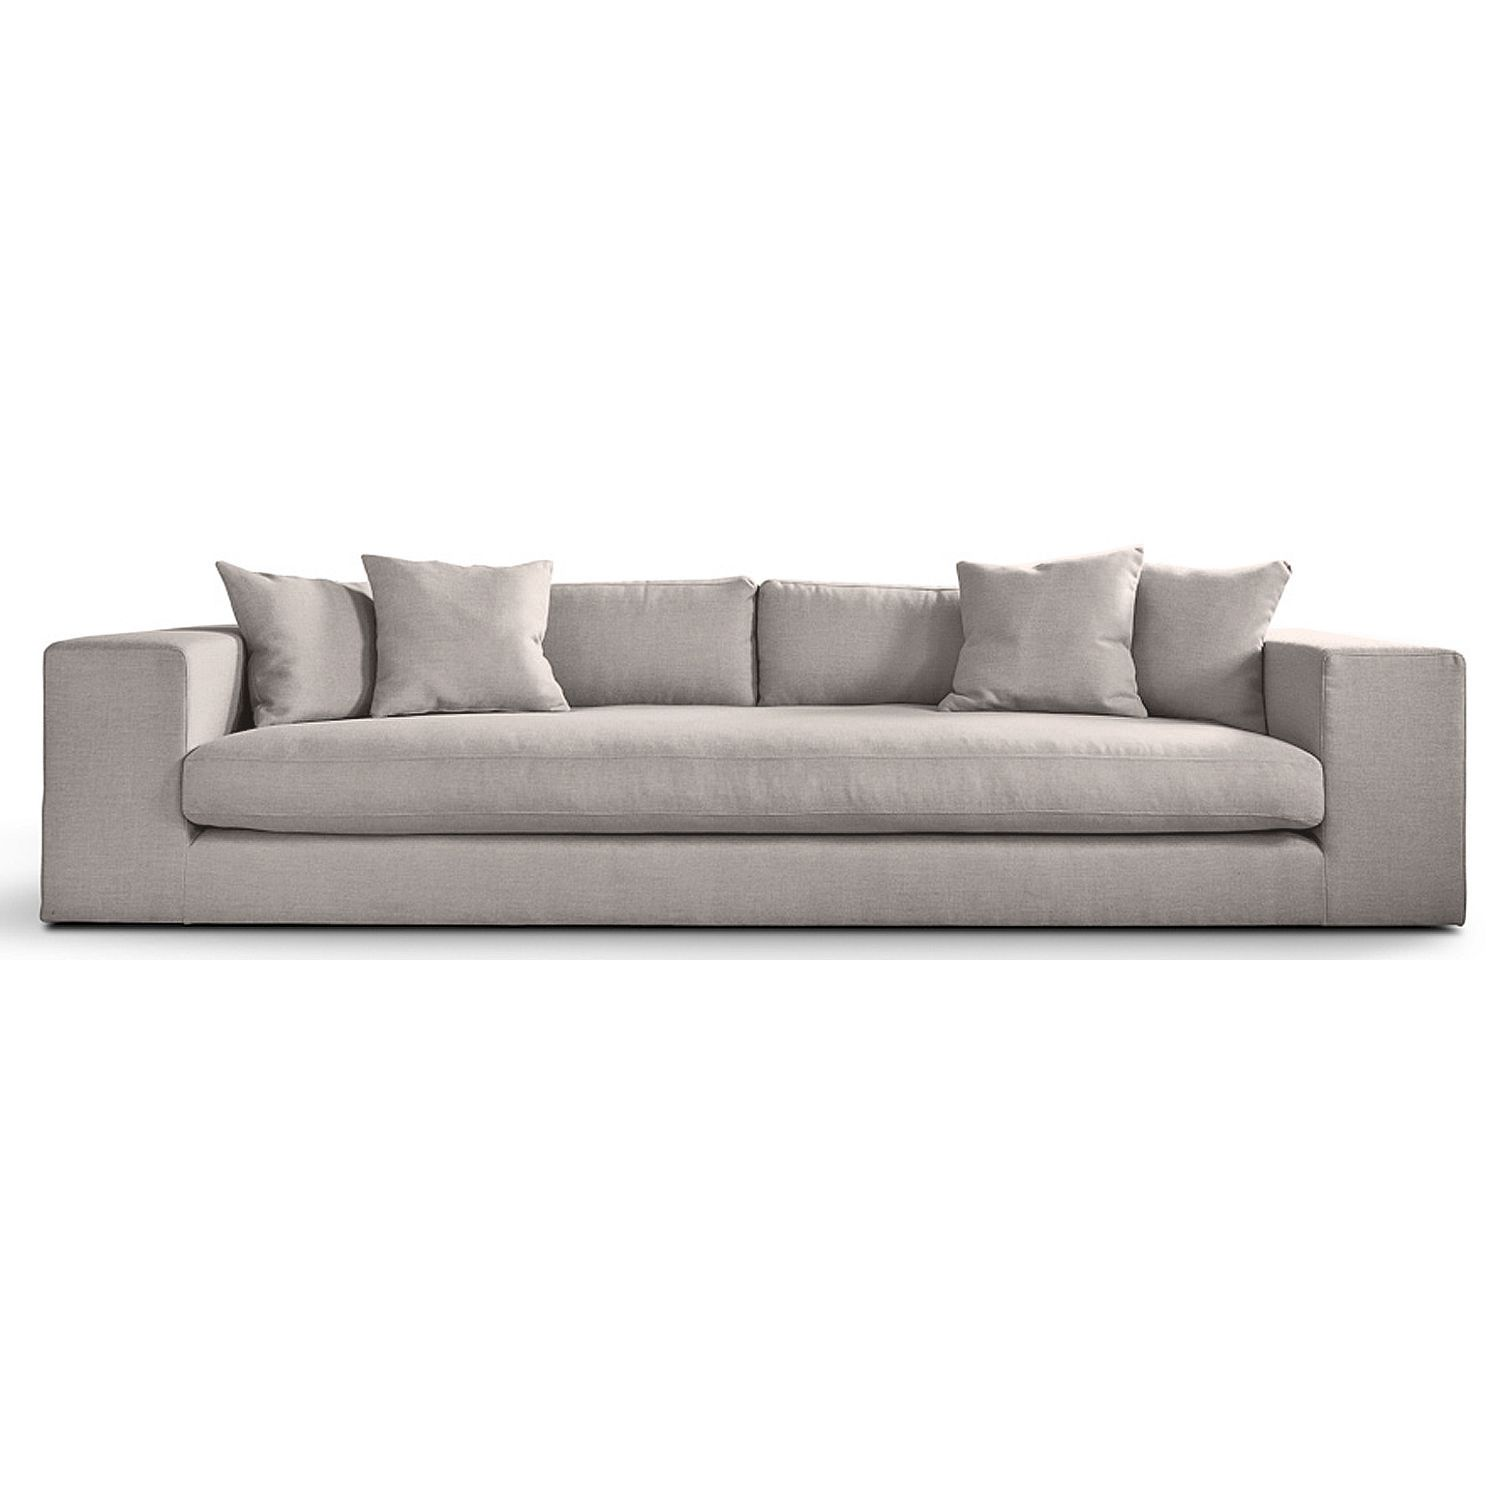 grey fabric sofa next mattress cover for sleeper barlow 4 seater day delivery